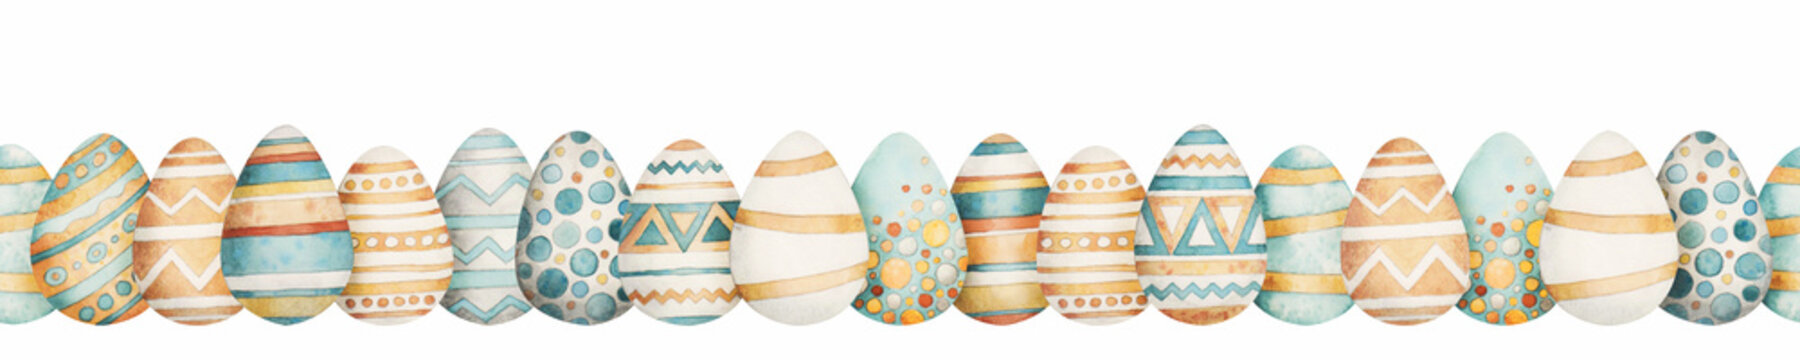 Easter border in watercolor style. Beautiful seamless border with easter eggs. Can be used for printed products: wallpaper, wrapping paper, napkins, postcards, stickers, printing on fabric.